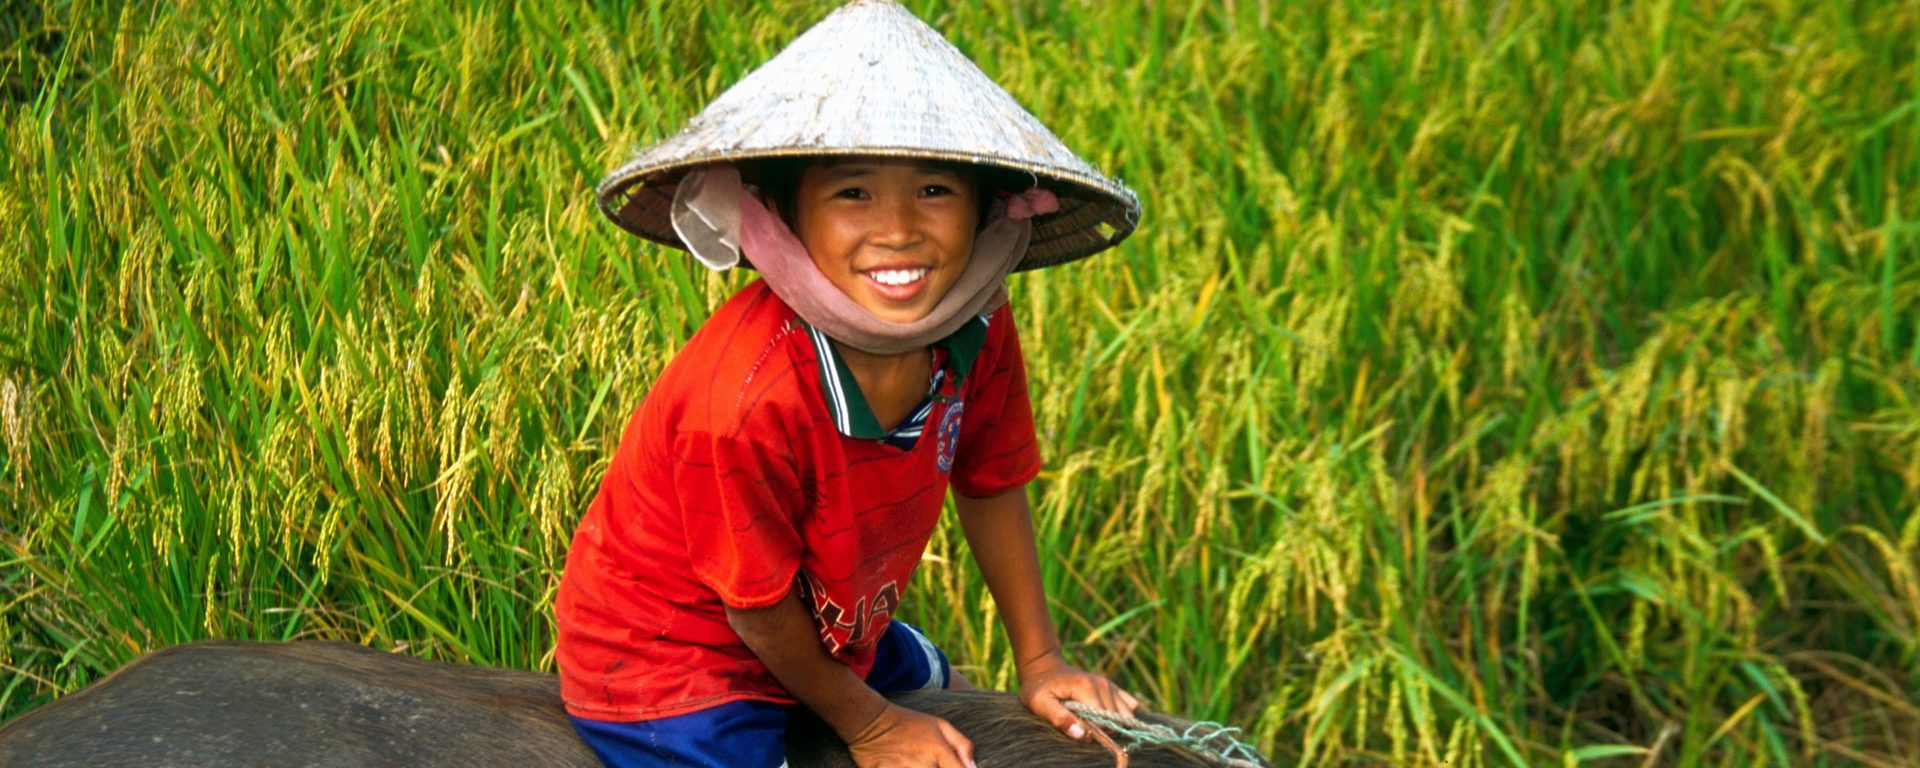 Vietnamese boy riding water buffalo in a rice field in the Mekong River Delta, Vietnam